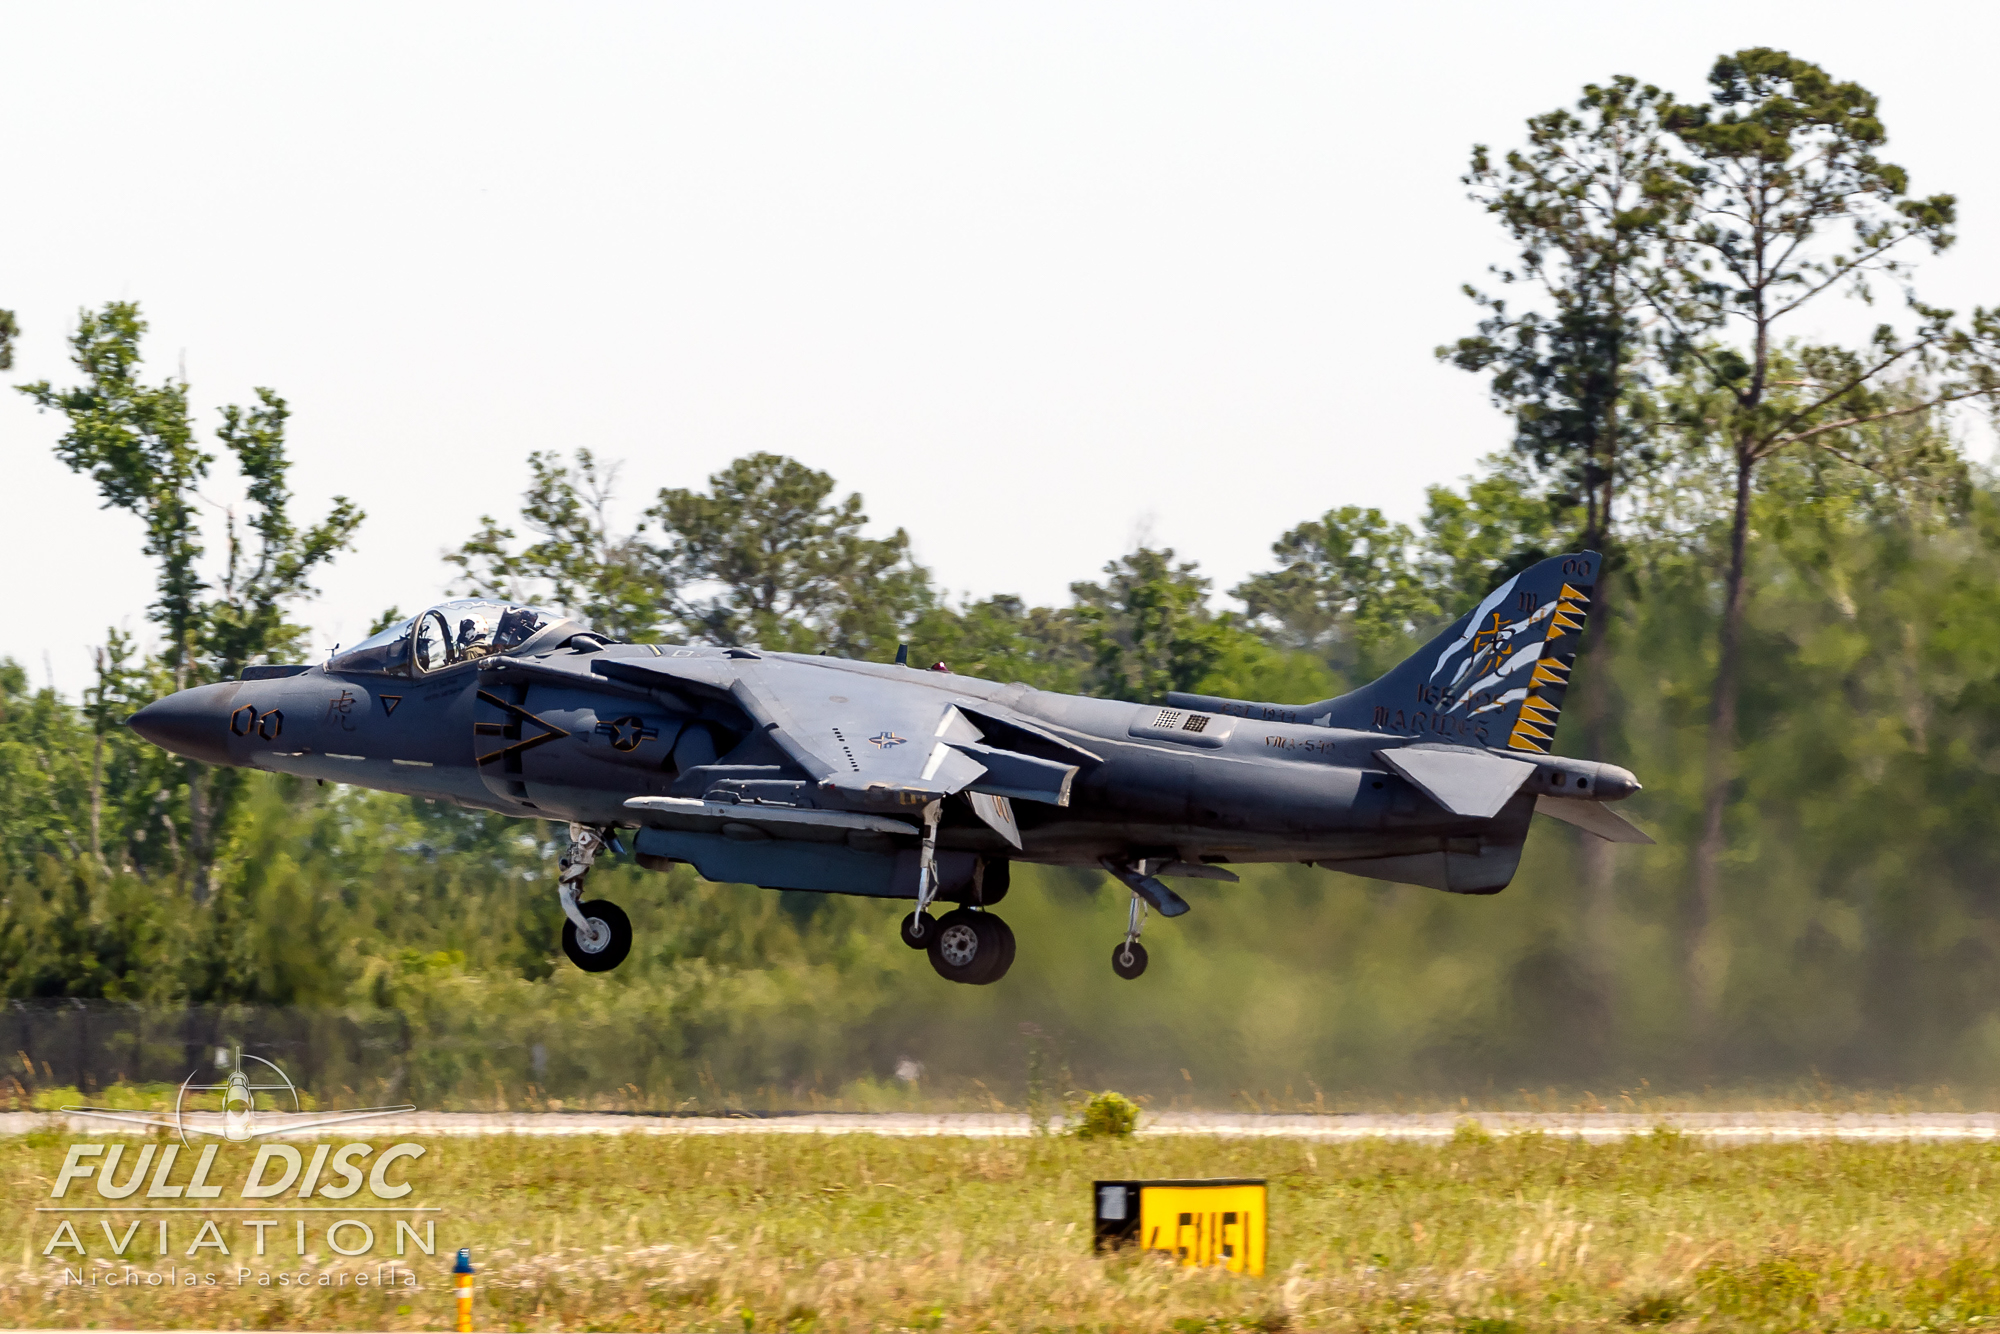 mcasbeaufort_harrier_av8b_nicholaspascarella_fulldiscavation_aviation_airshow.jpg